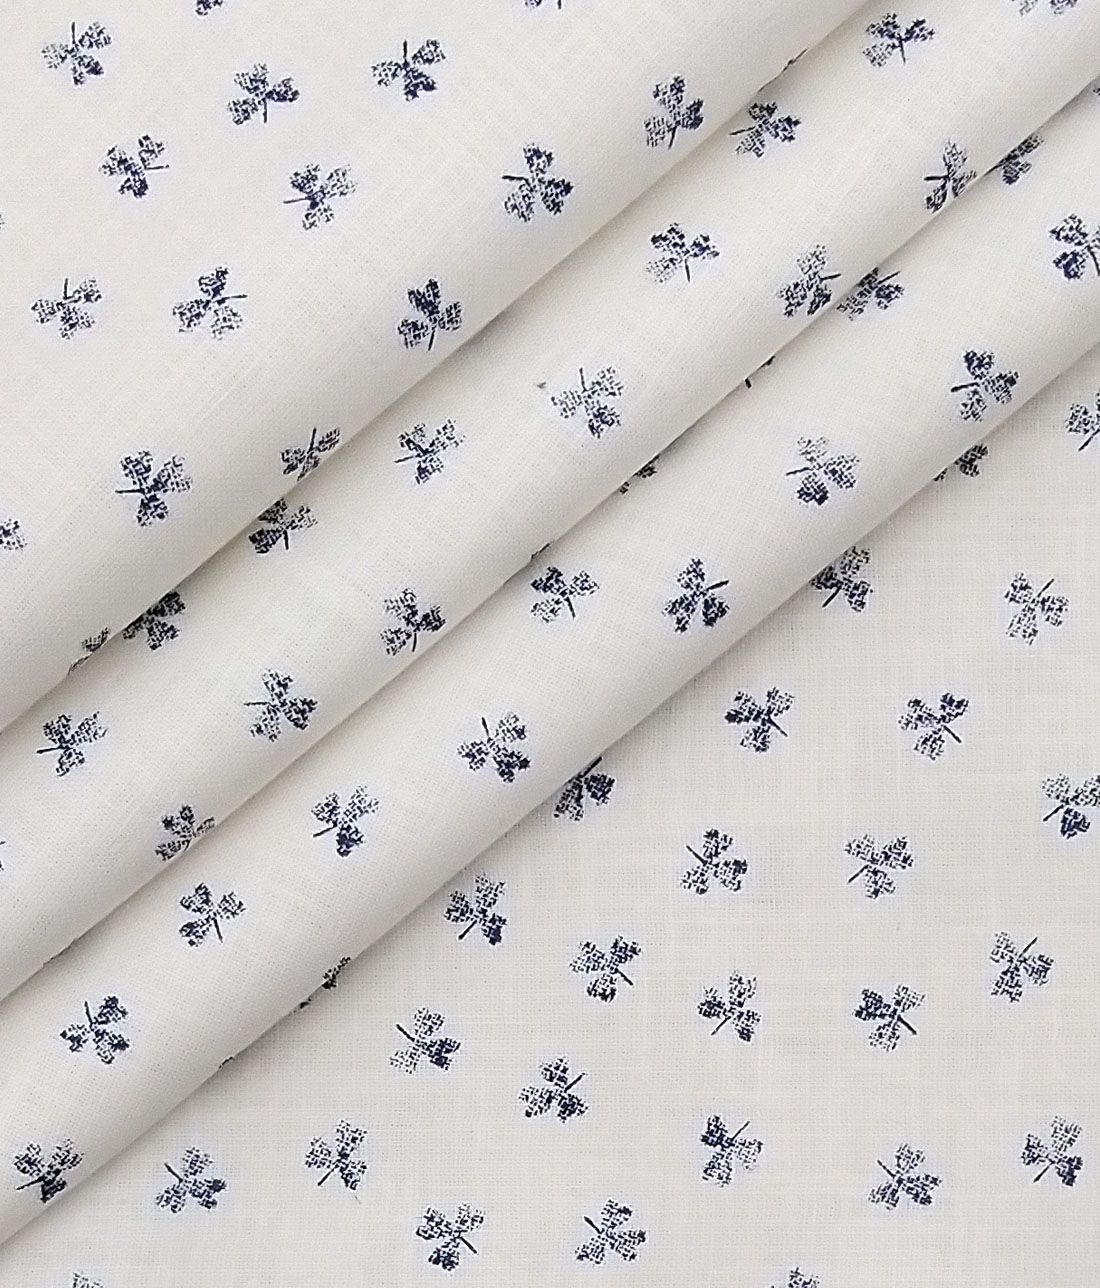 b6b5f8739e8 Combo of Raymond Dark Blue Self Design Trouser Fabric With Monza Off-White  100% Cotton Printed Chambray Shirt Fabric (Unstitched)